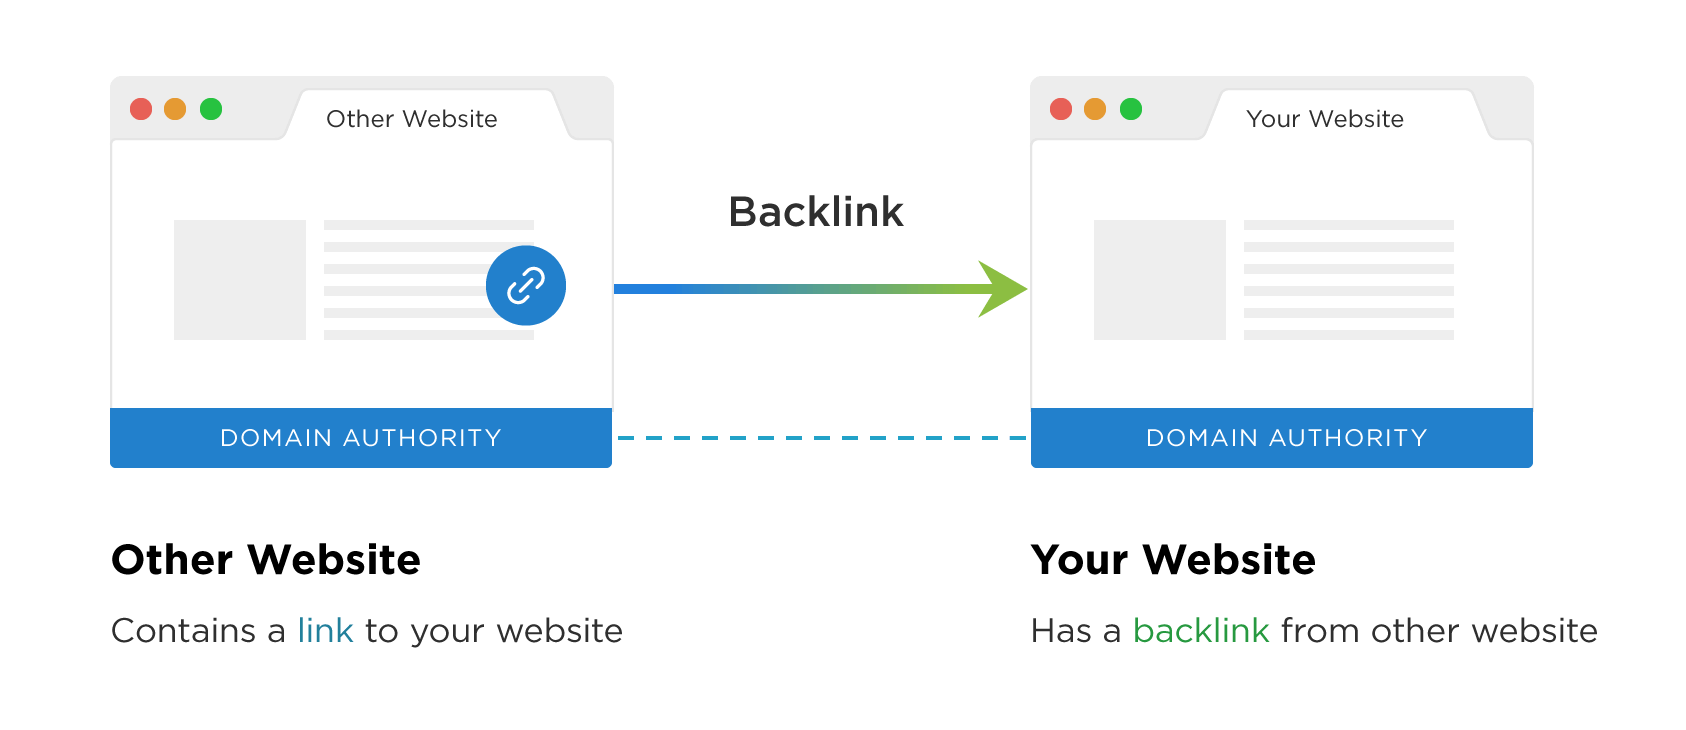 What exactly is a backlink